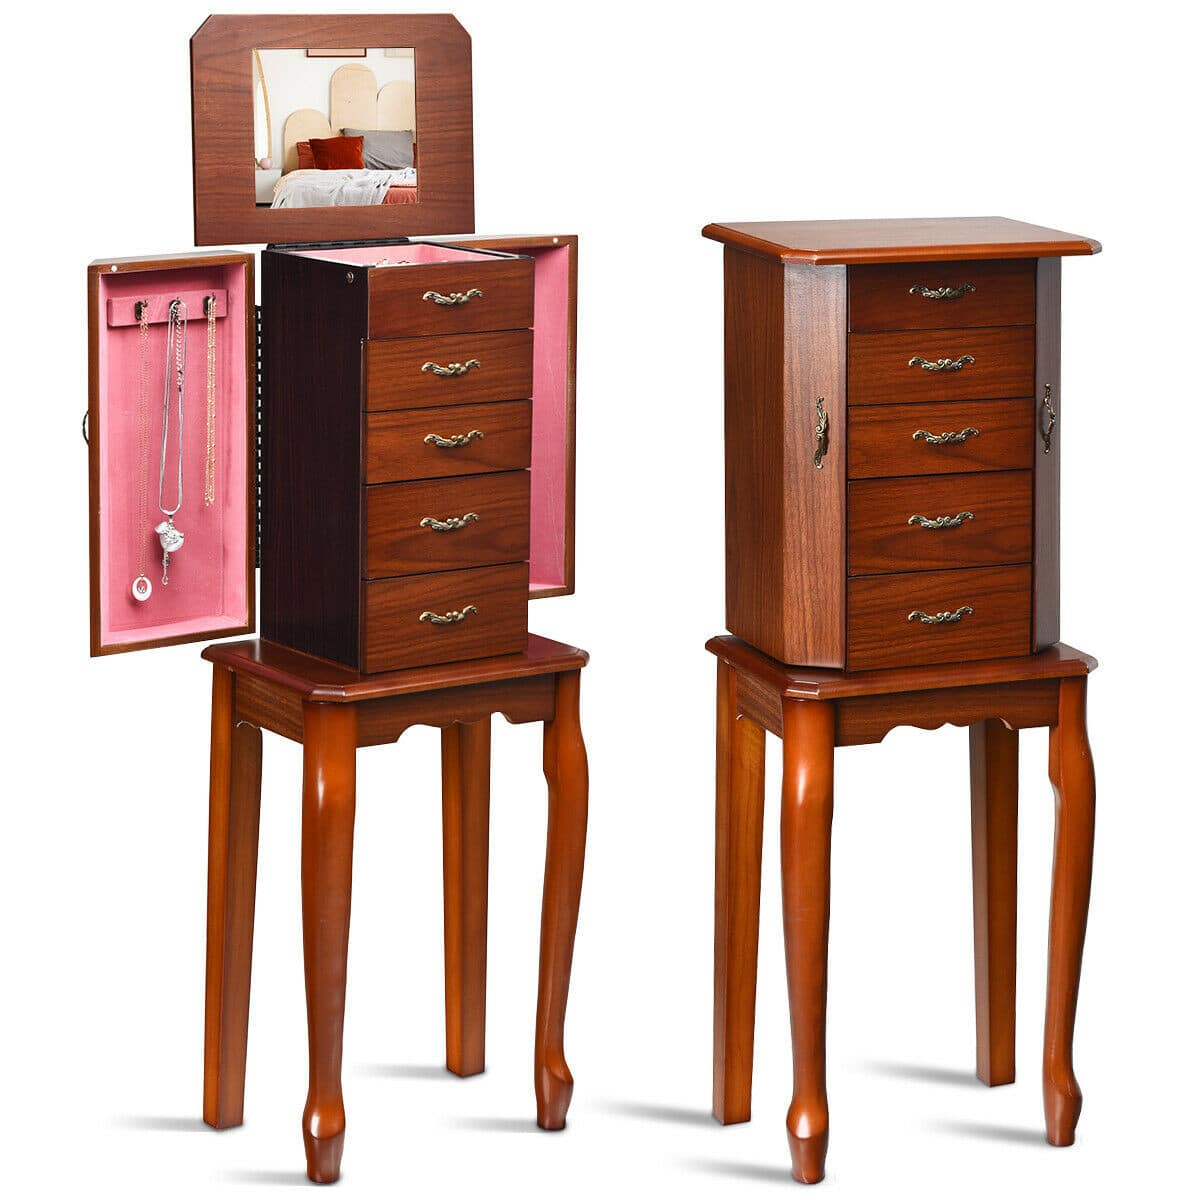 Jewelry Cabinet Armoire Storage Chest Stand Organizer - $60.95 + Free Shipping